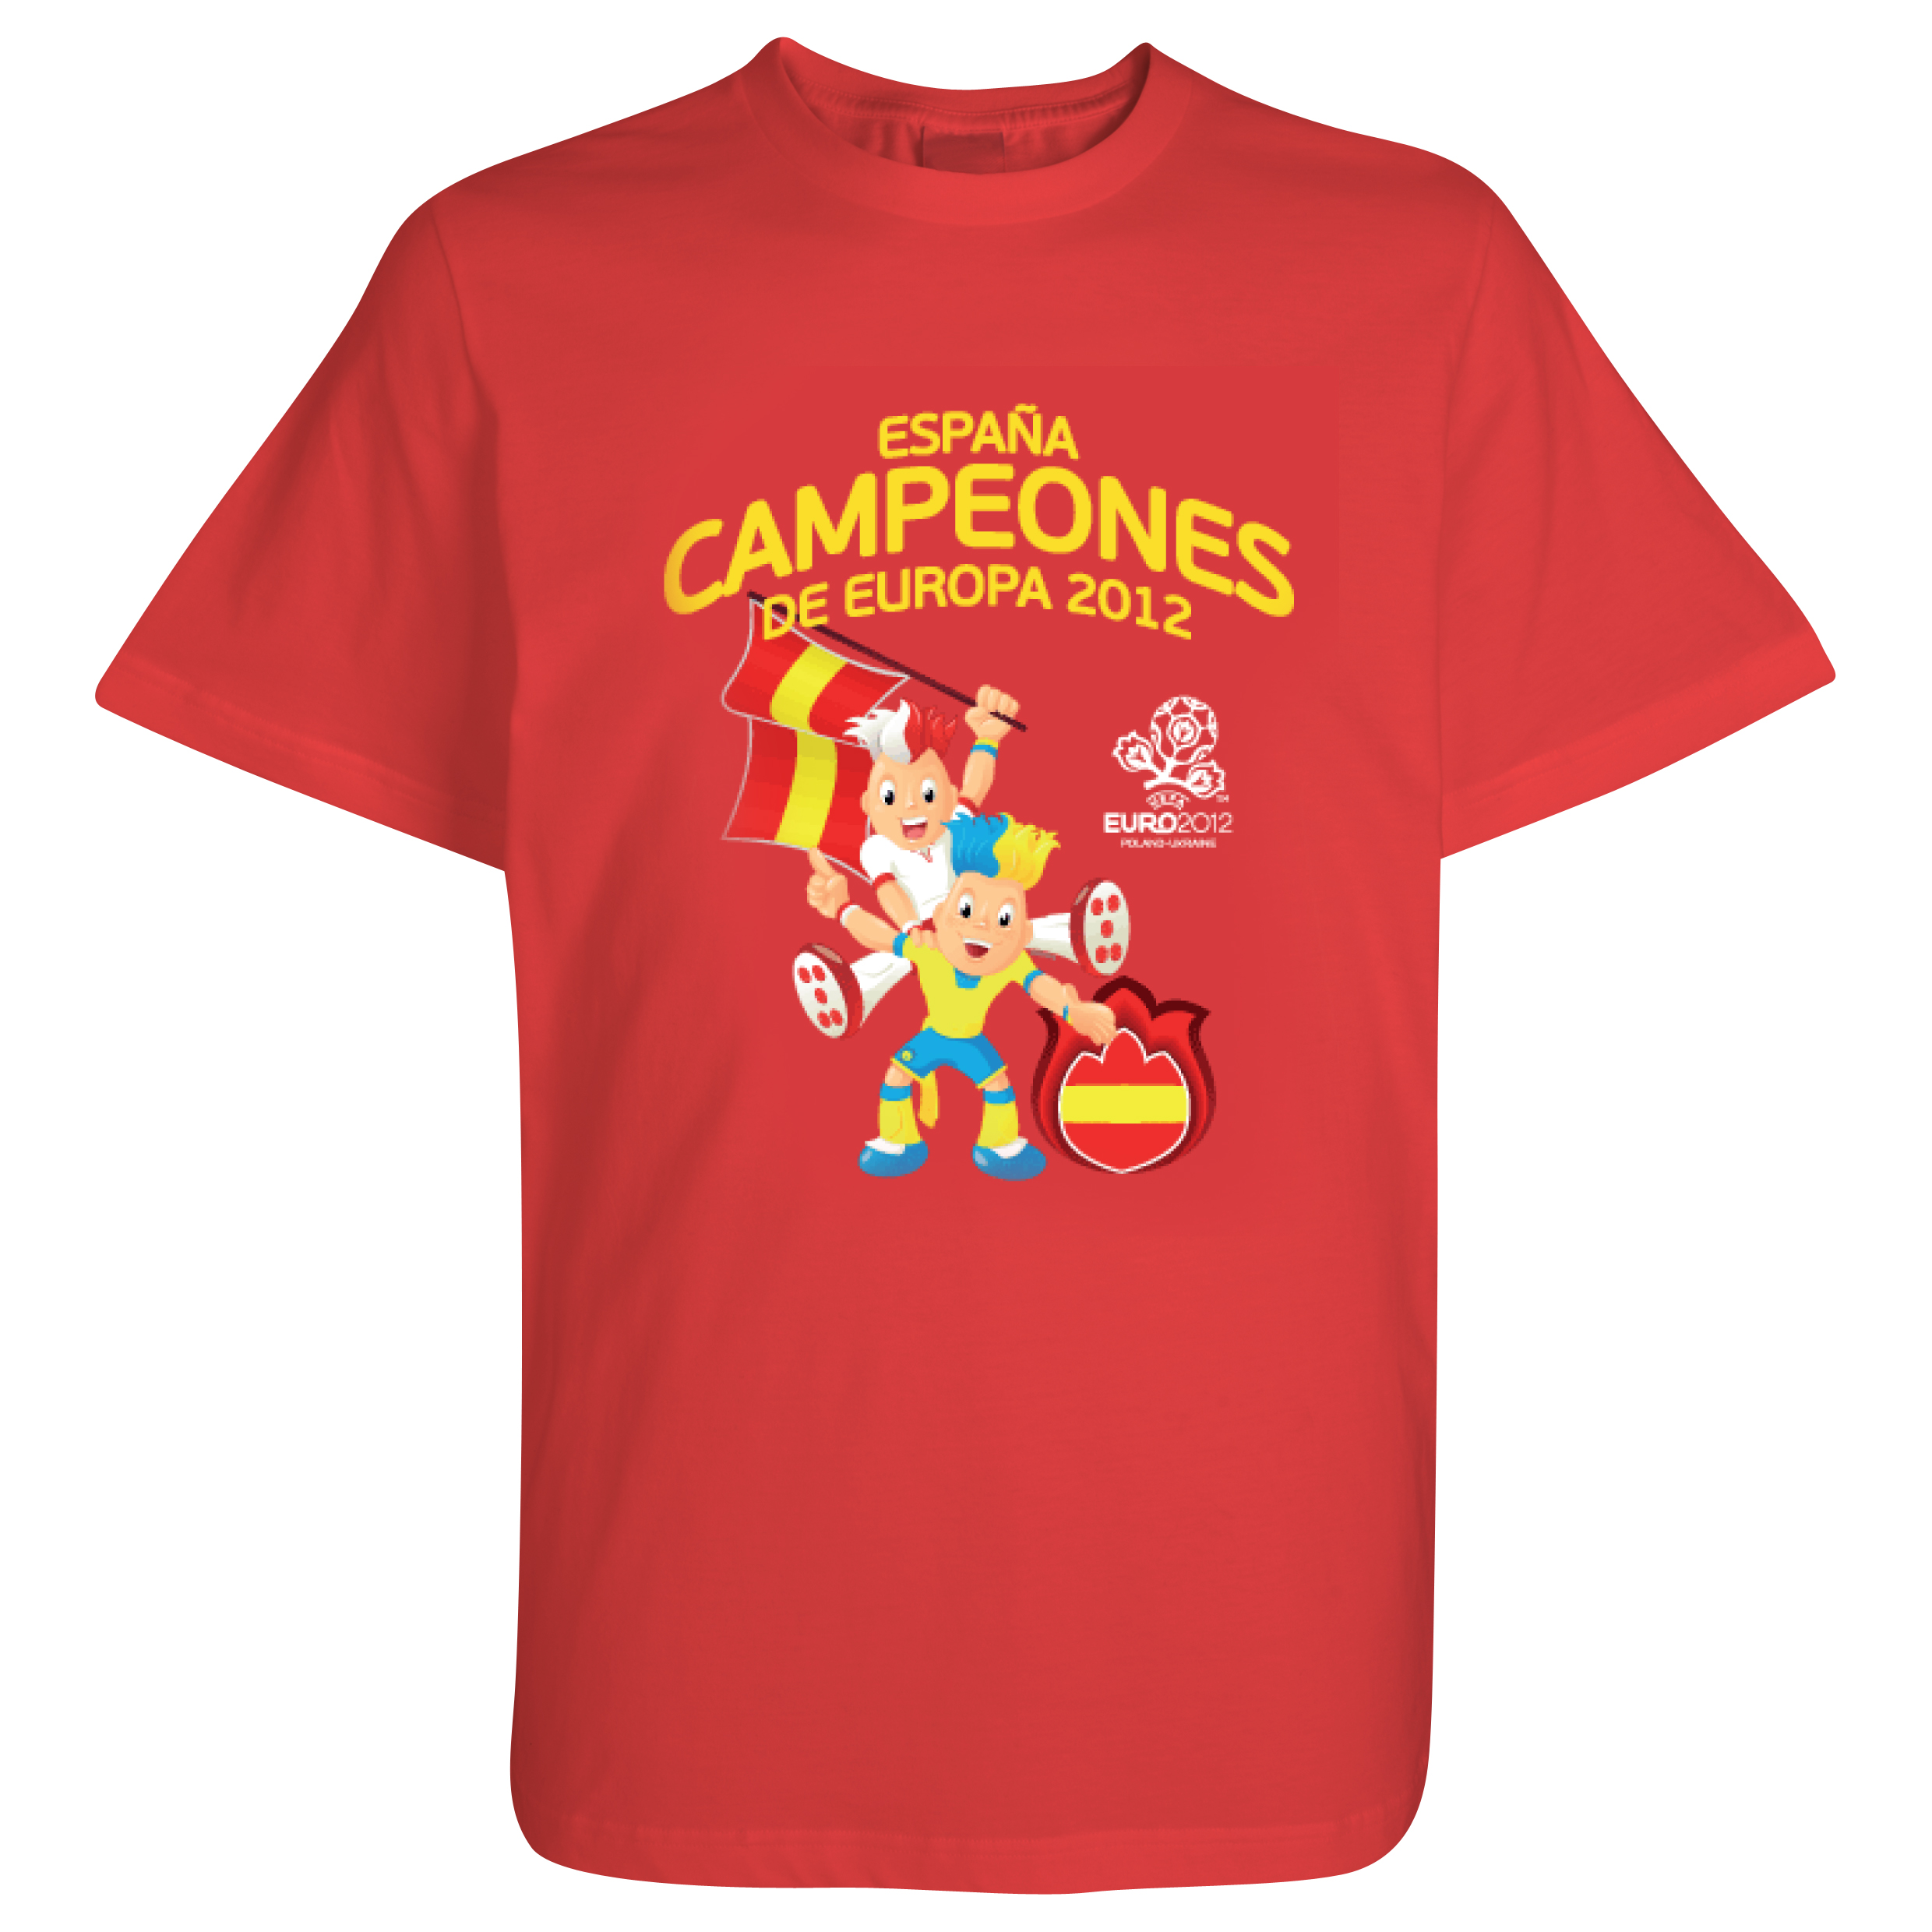 Spain EURO 2012 Winners T-Shirt - Red